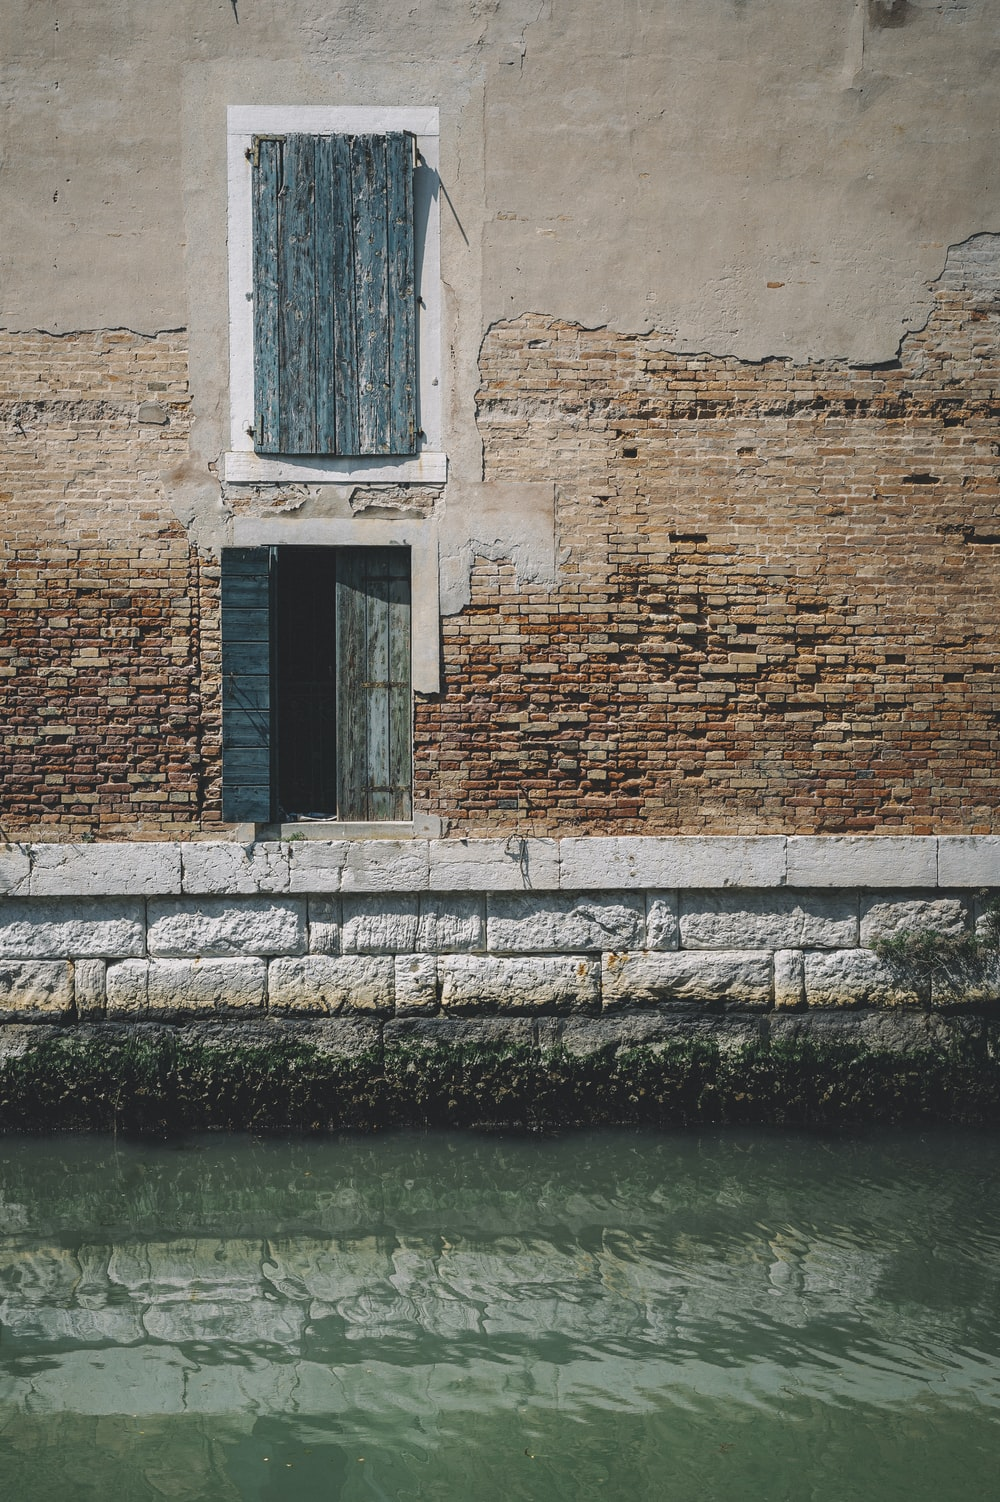 brown brick wall beside body of water during daytime